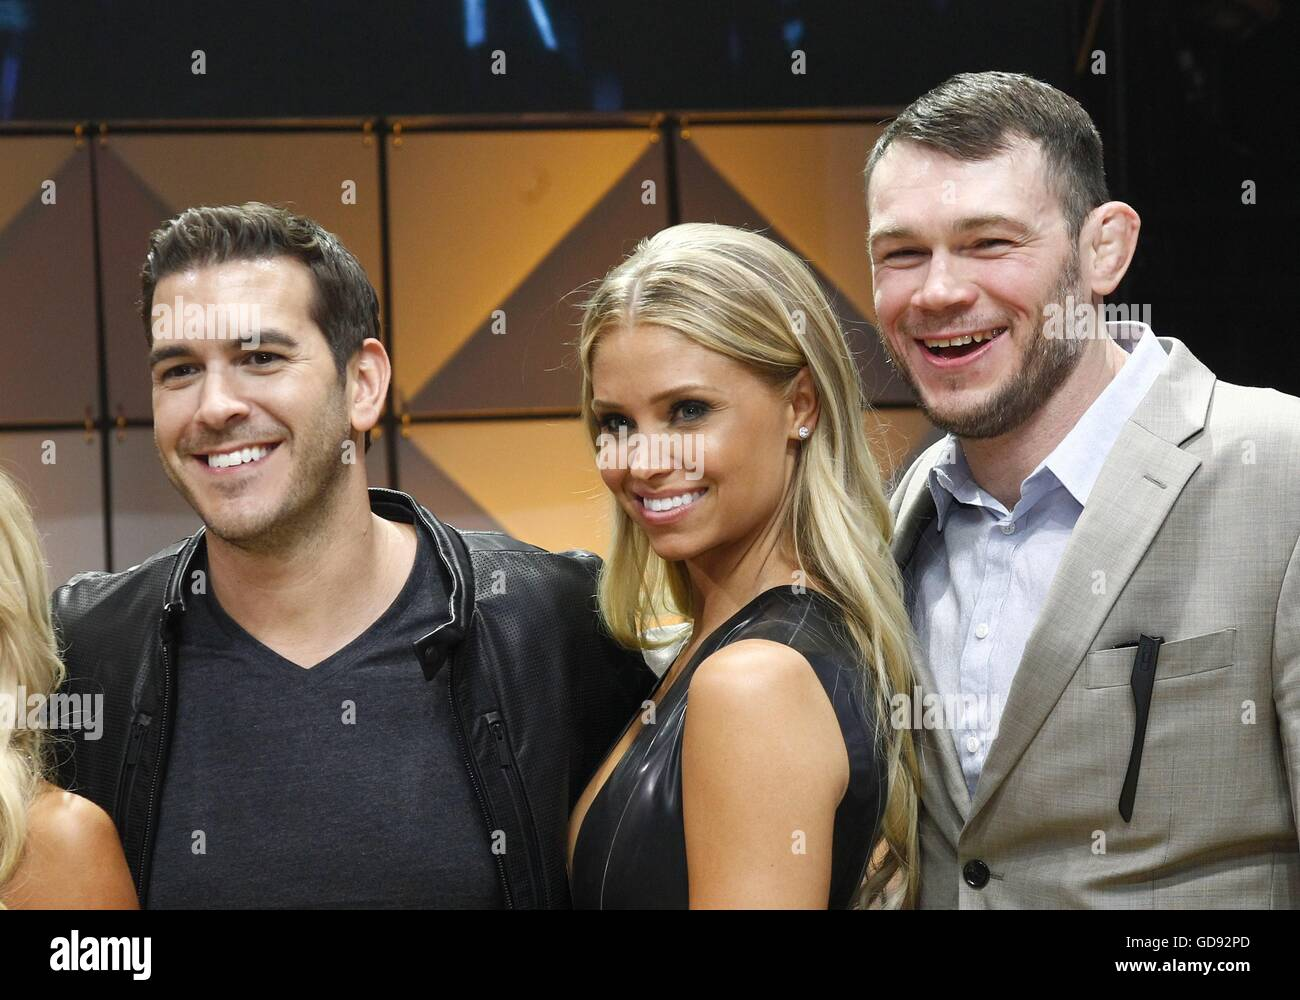 Rich Davis, Sara Hoots, Forrest Griffin in attendance for Hooters 20th Annual International Swimsuit Pageant, The - Stock Image